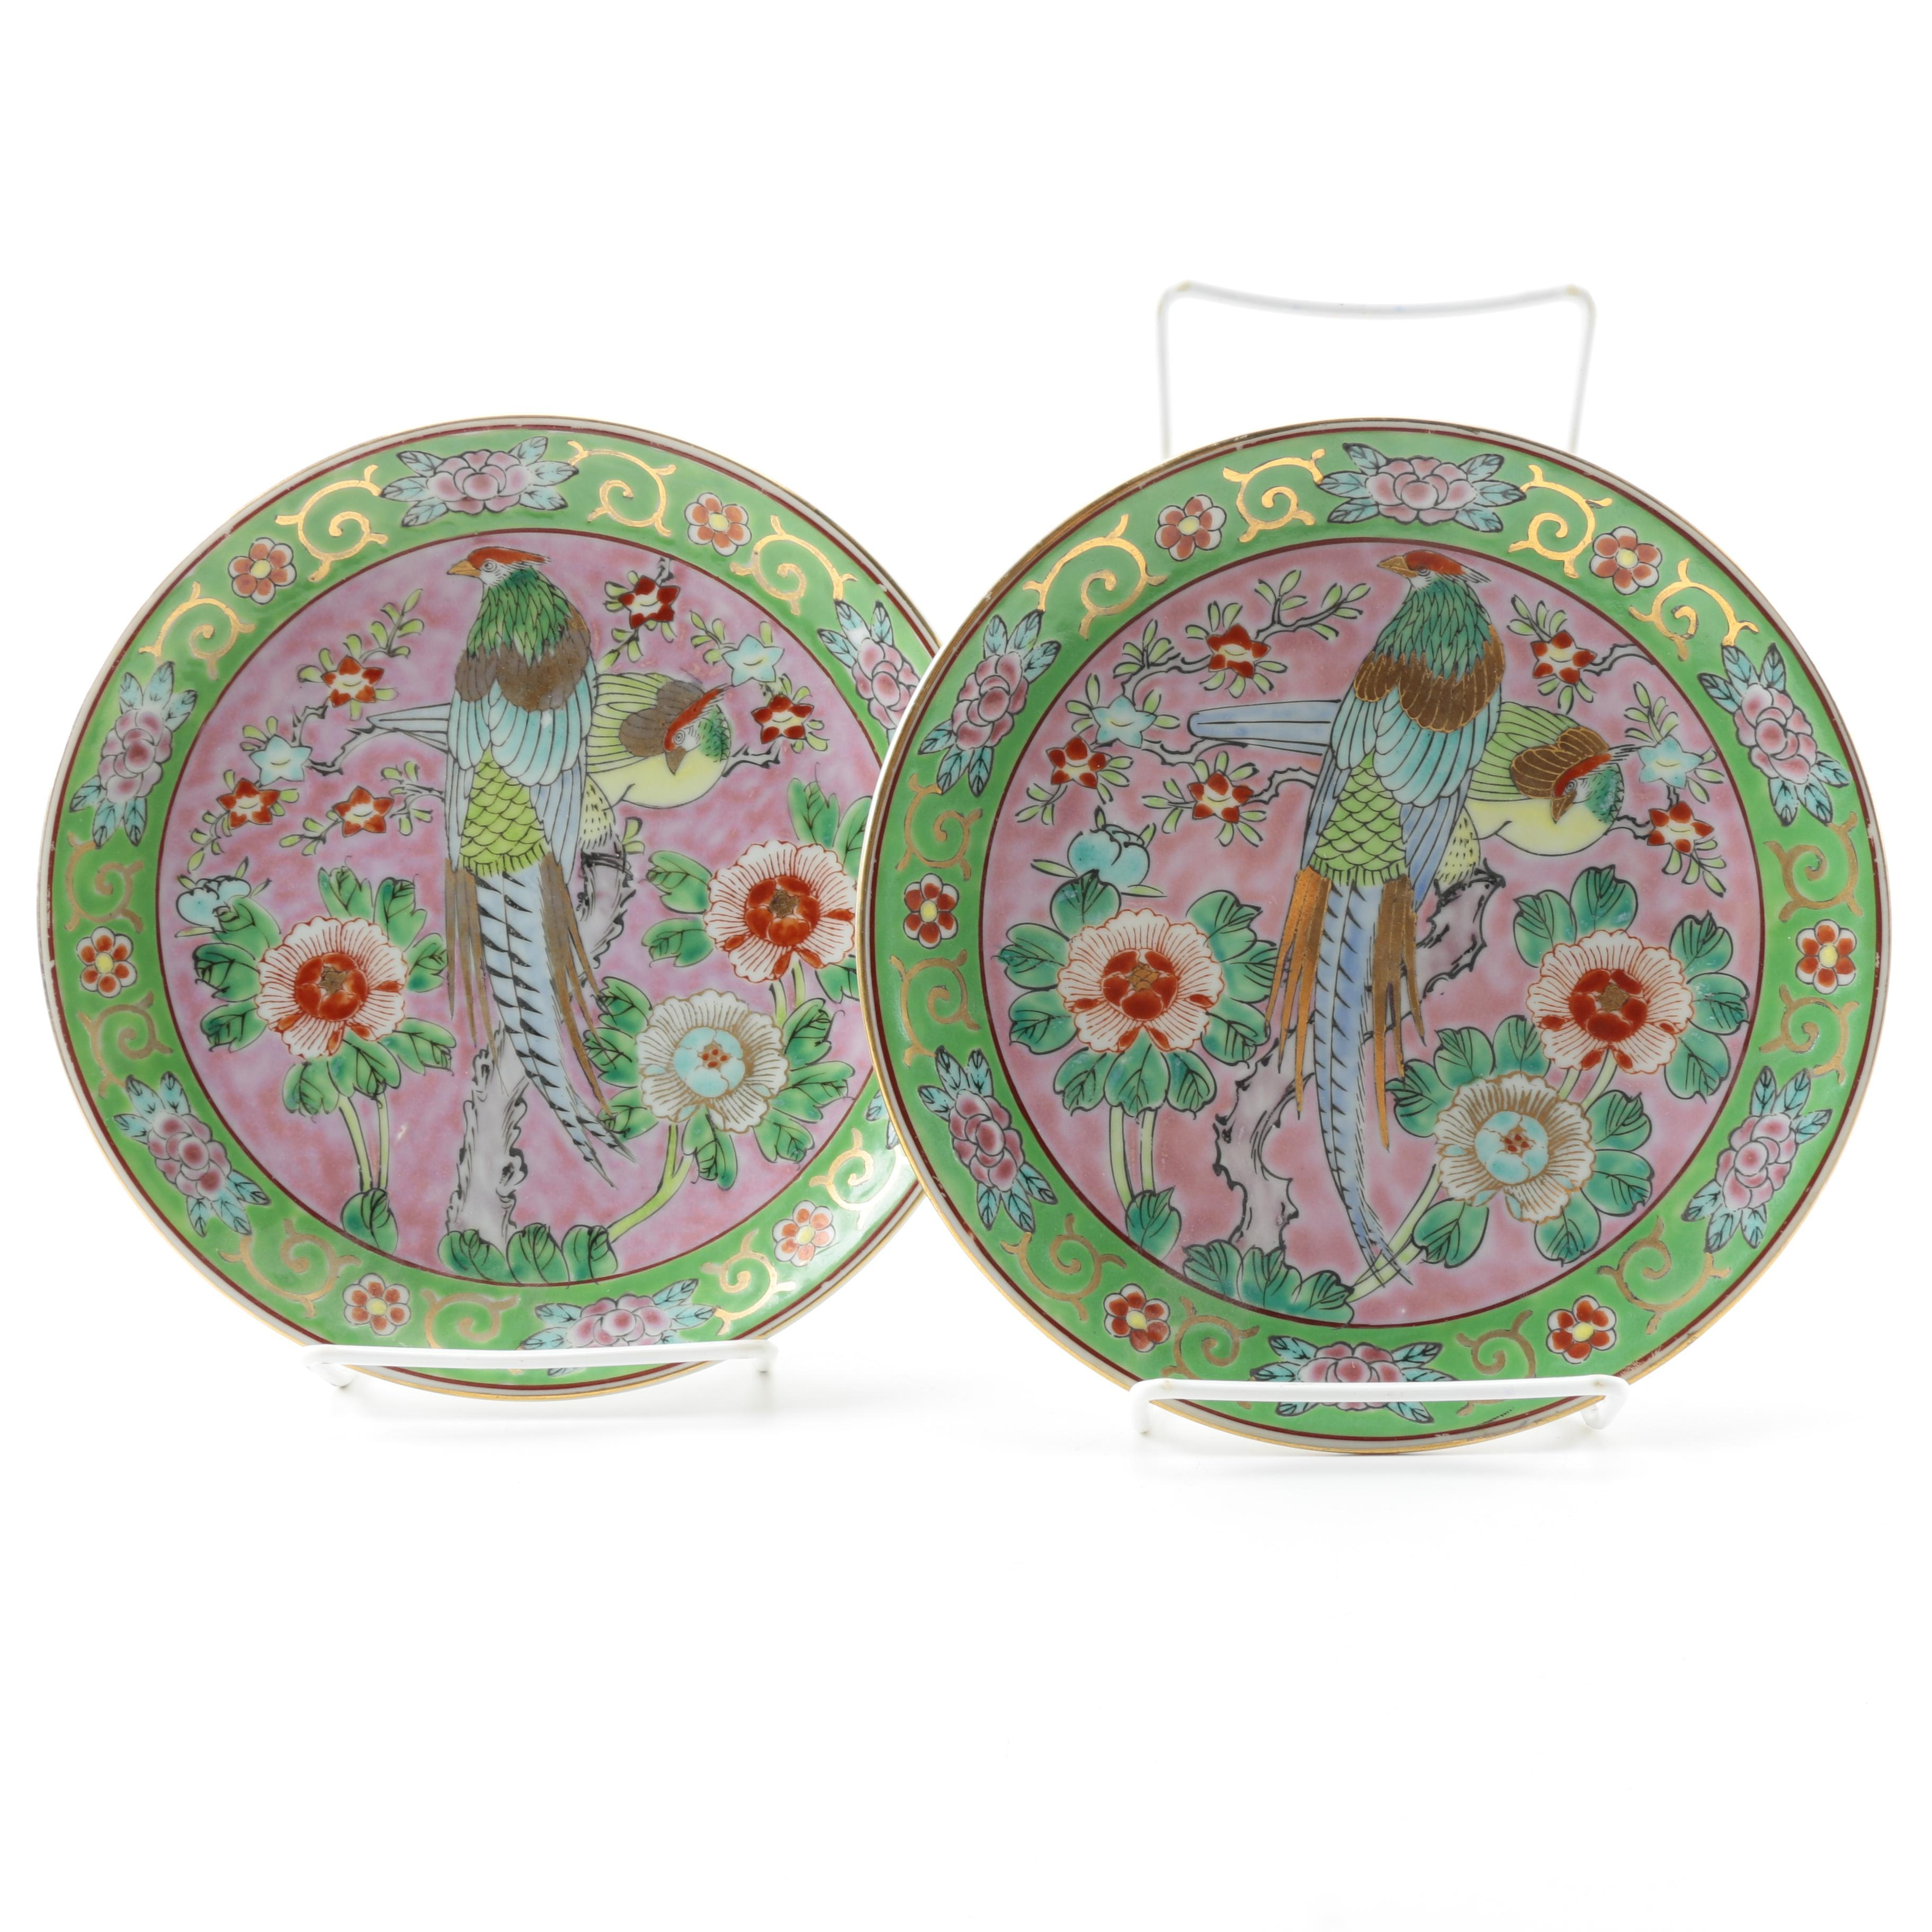 Hand-painted Japanese Plates